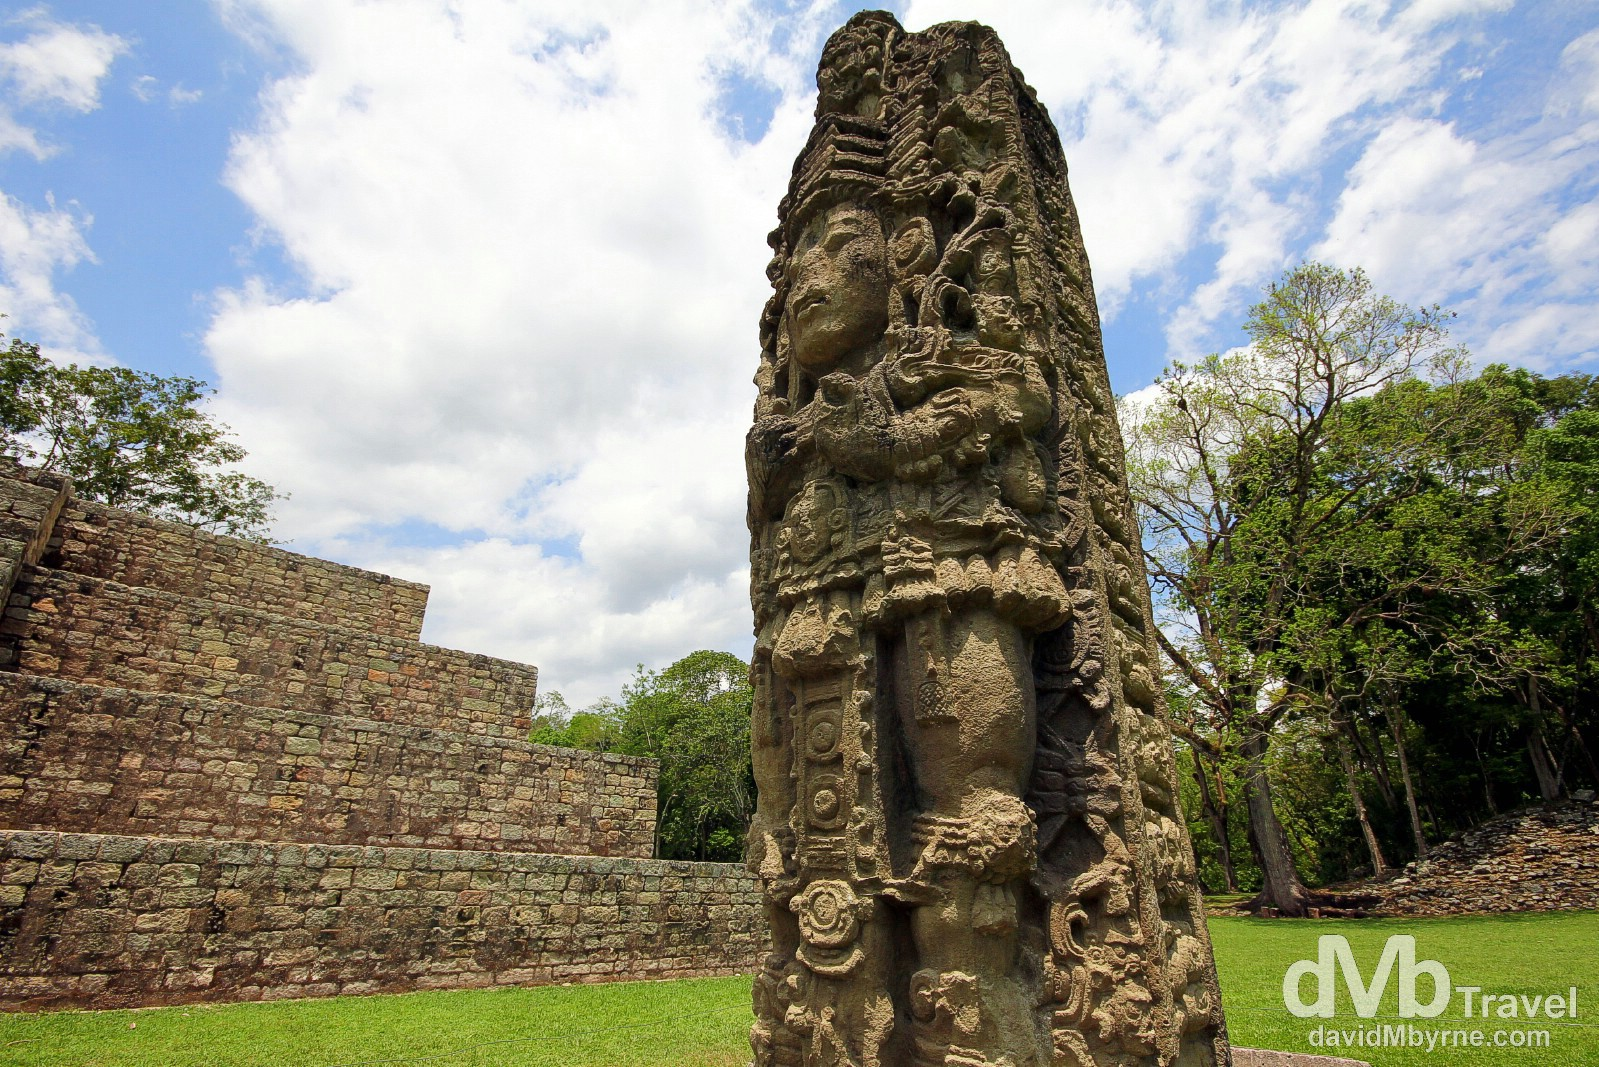 Stelae 3 in the Great Plaza of the Copan Architectural Site, western Honduras. June 7th 2013.